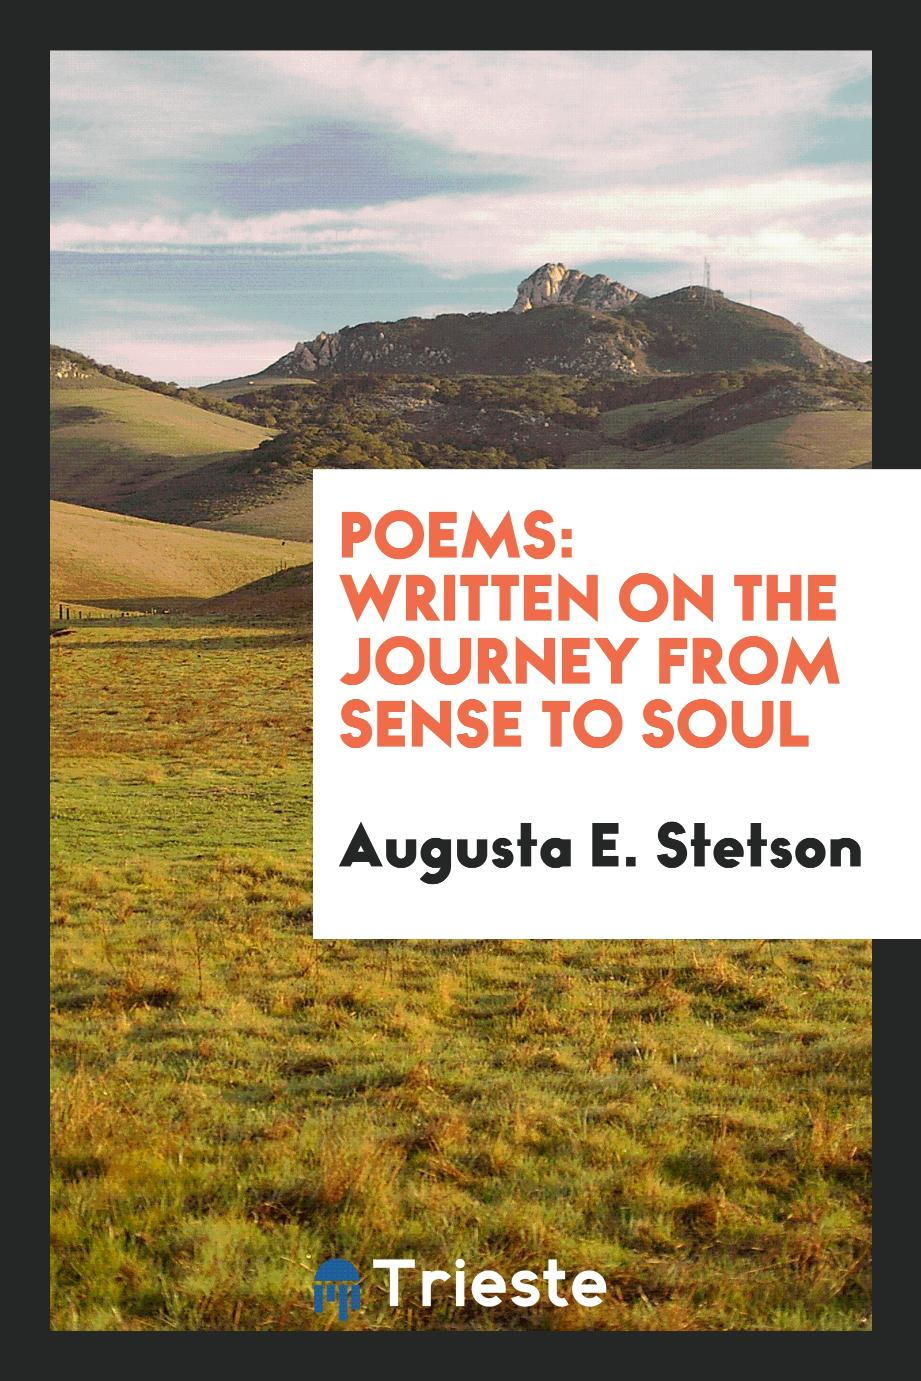 Poems: Written on the Journey from Sense to Soul